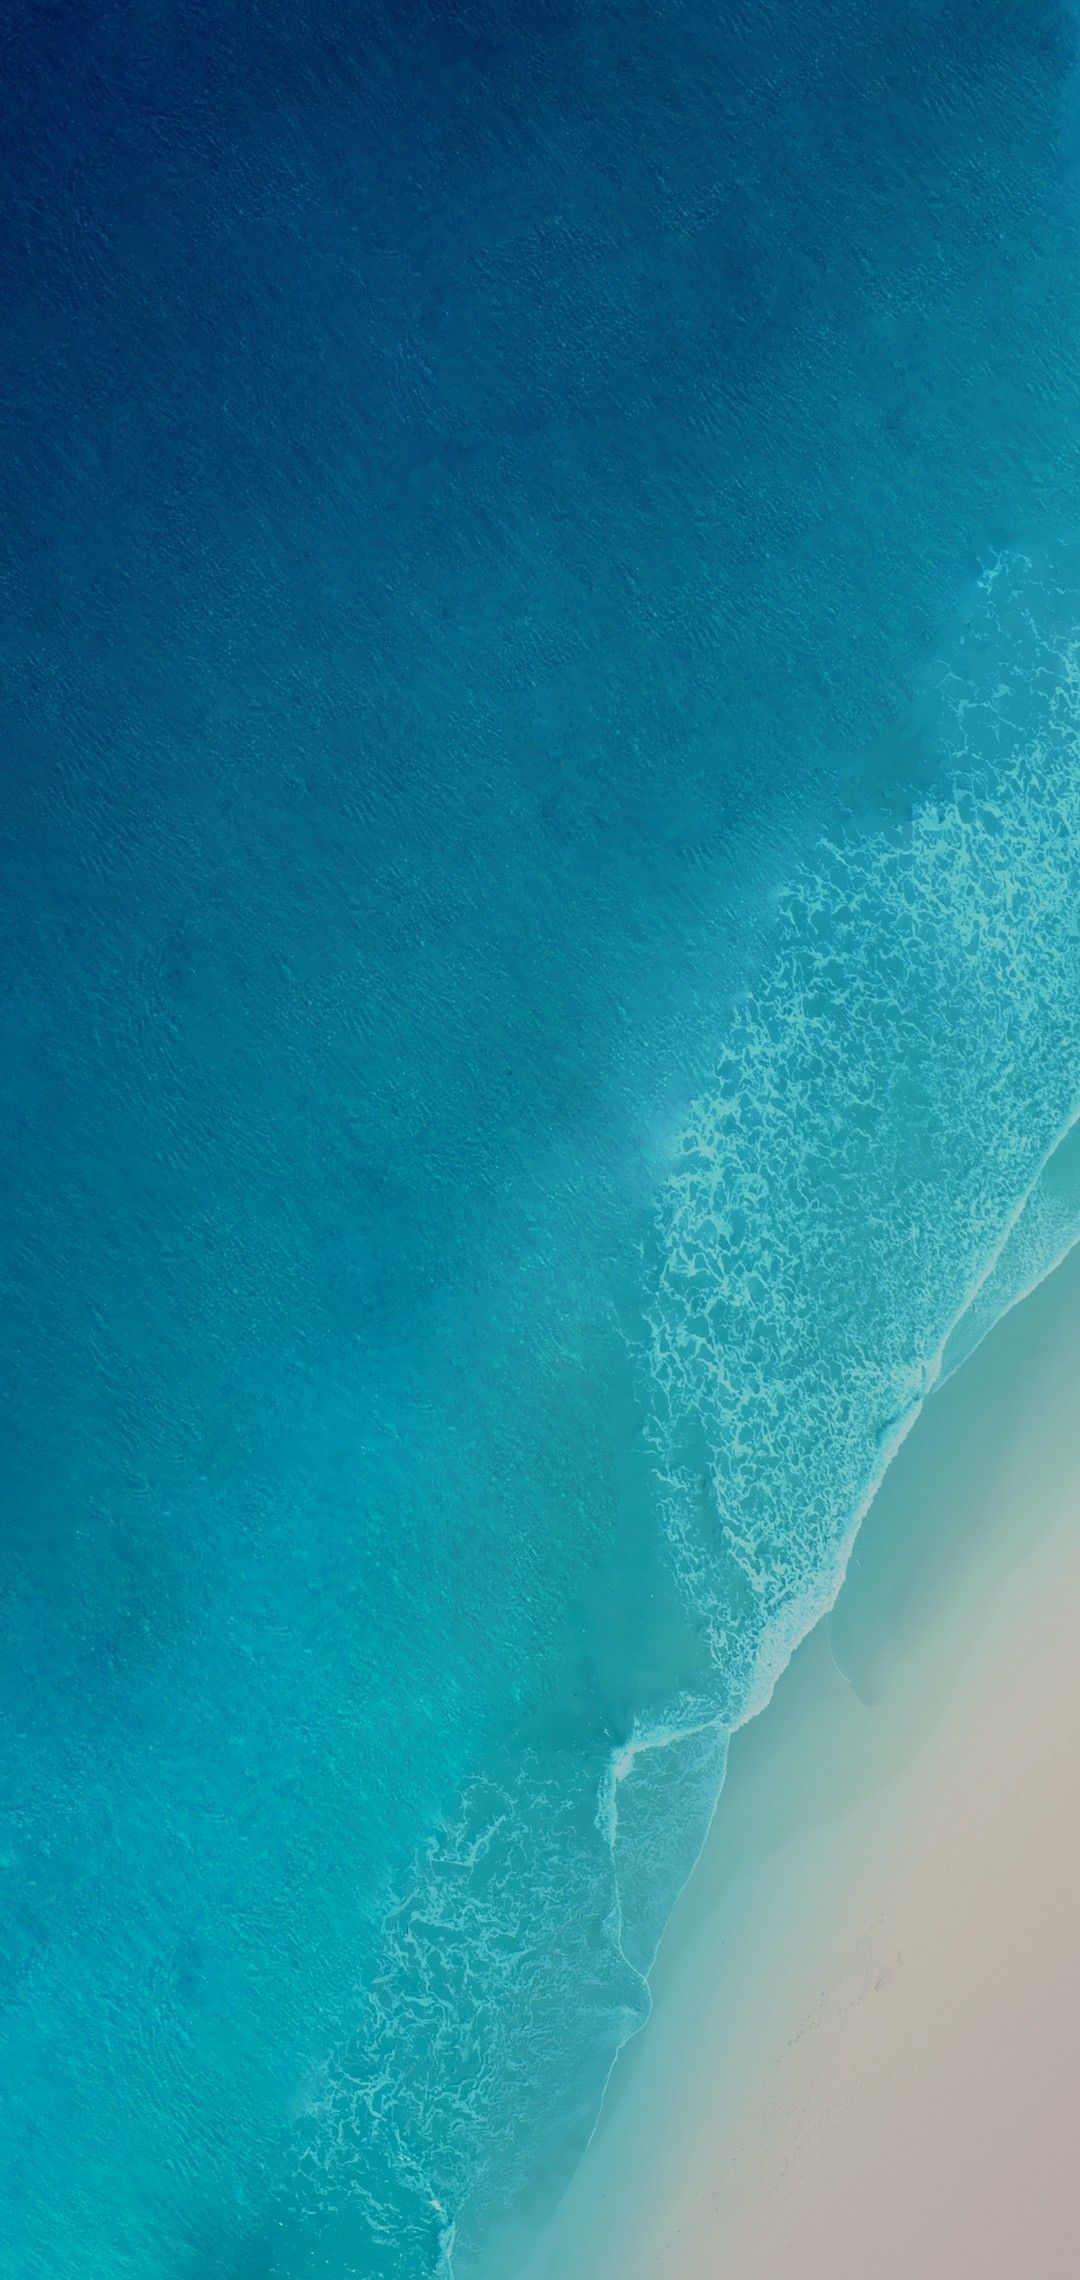 Ios 12 Iphone X Aqua Blue Water Ocean Apple Wallpaper Iphone 8 Clean Beauty Colou In 2020 Iphone Wallpaper Water Blue Wallpaper Iphone Wallpaper Iphone Ios7